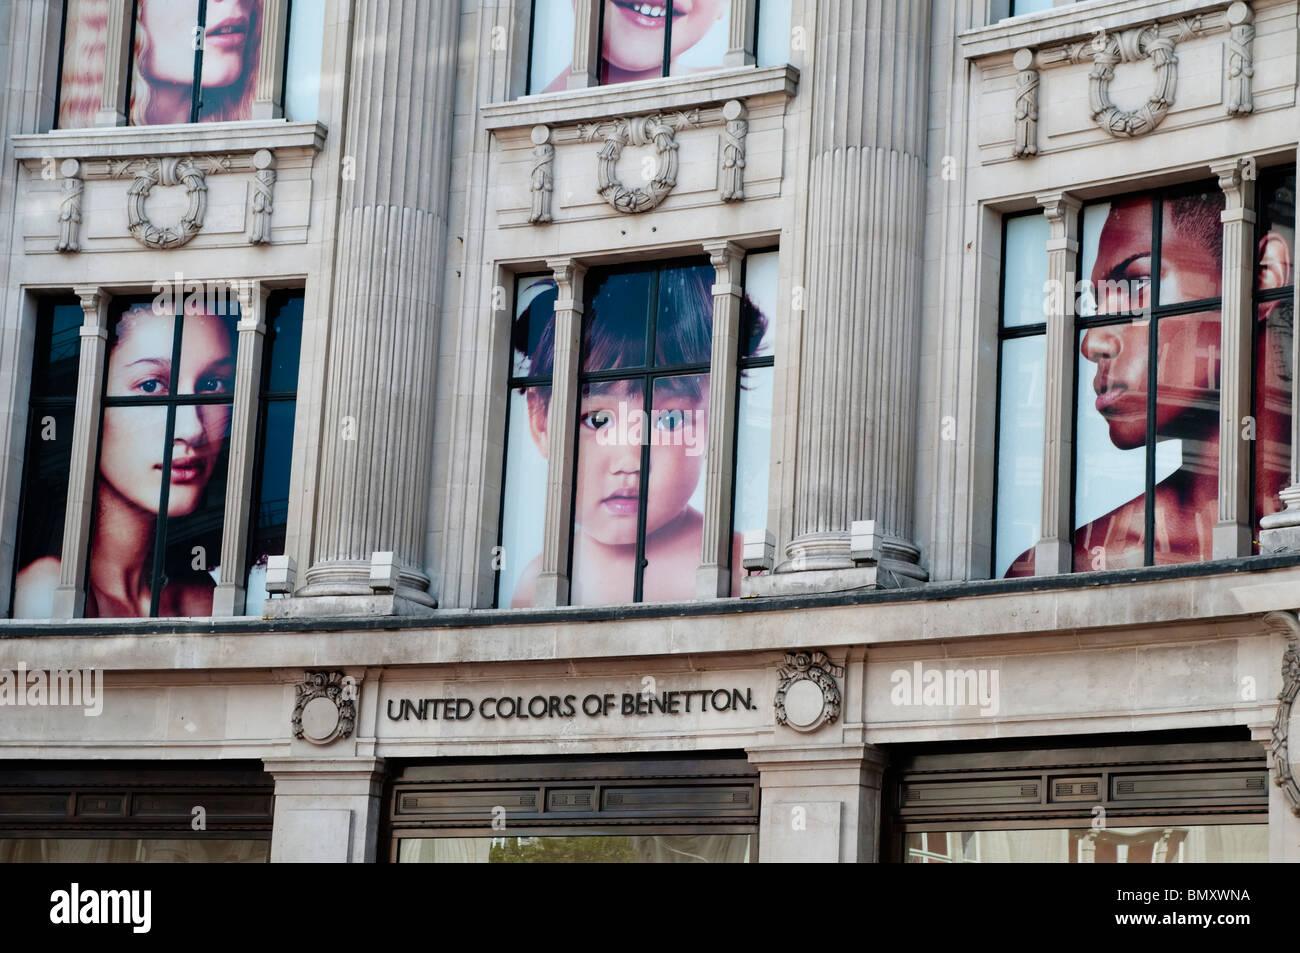 United Colors of Benetton shop on Oxford Circus, London, UK - Stock Image